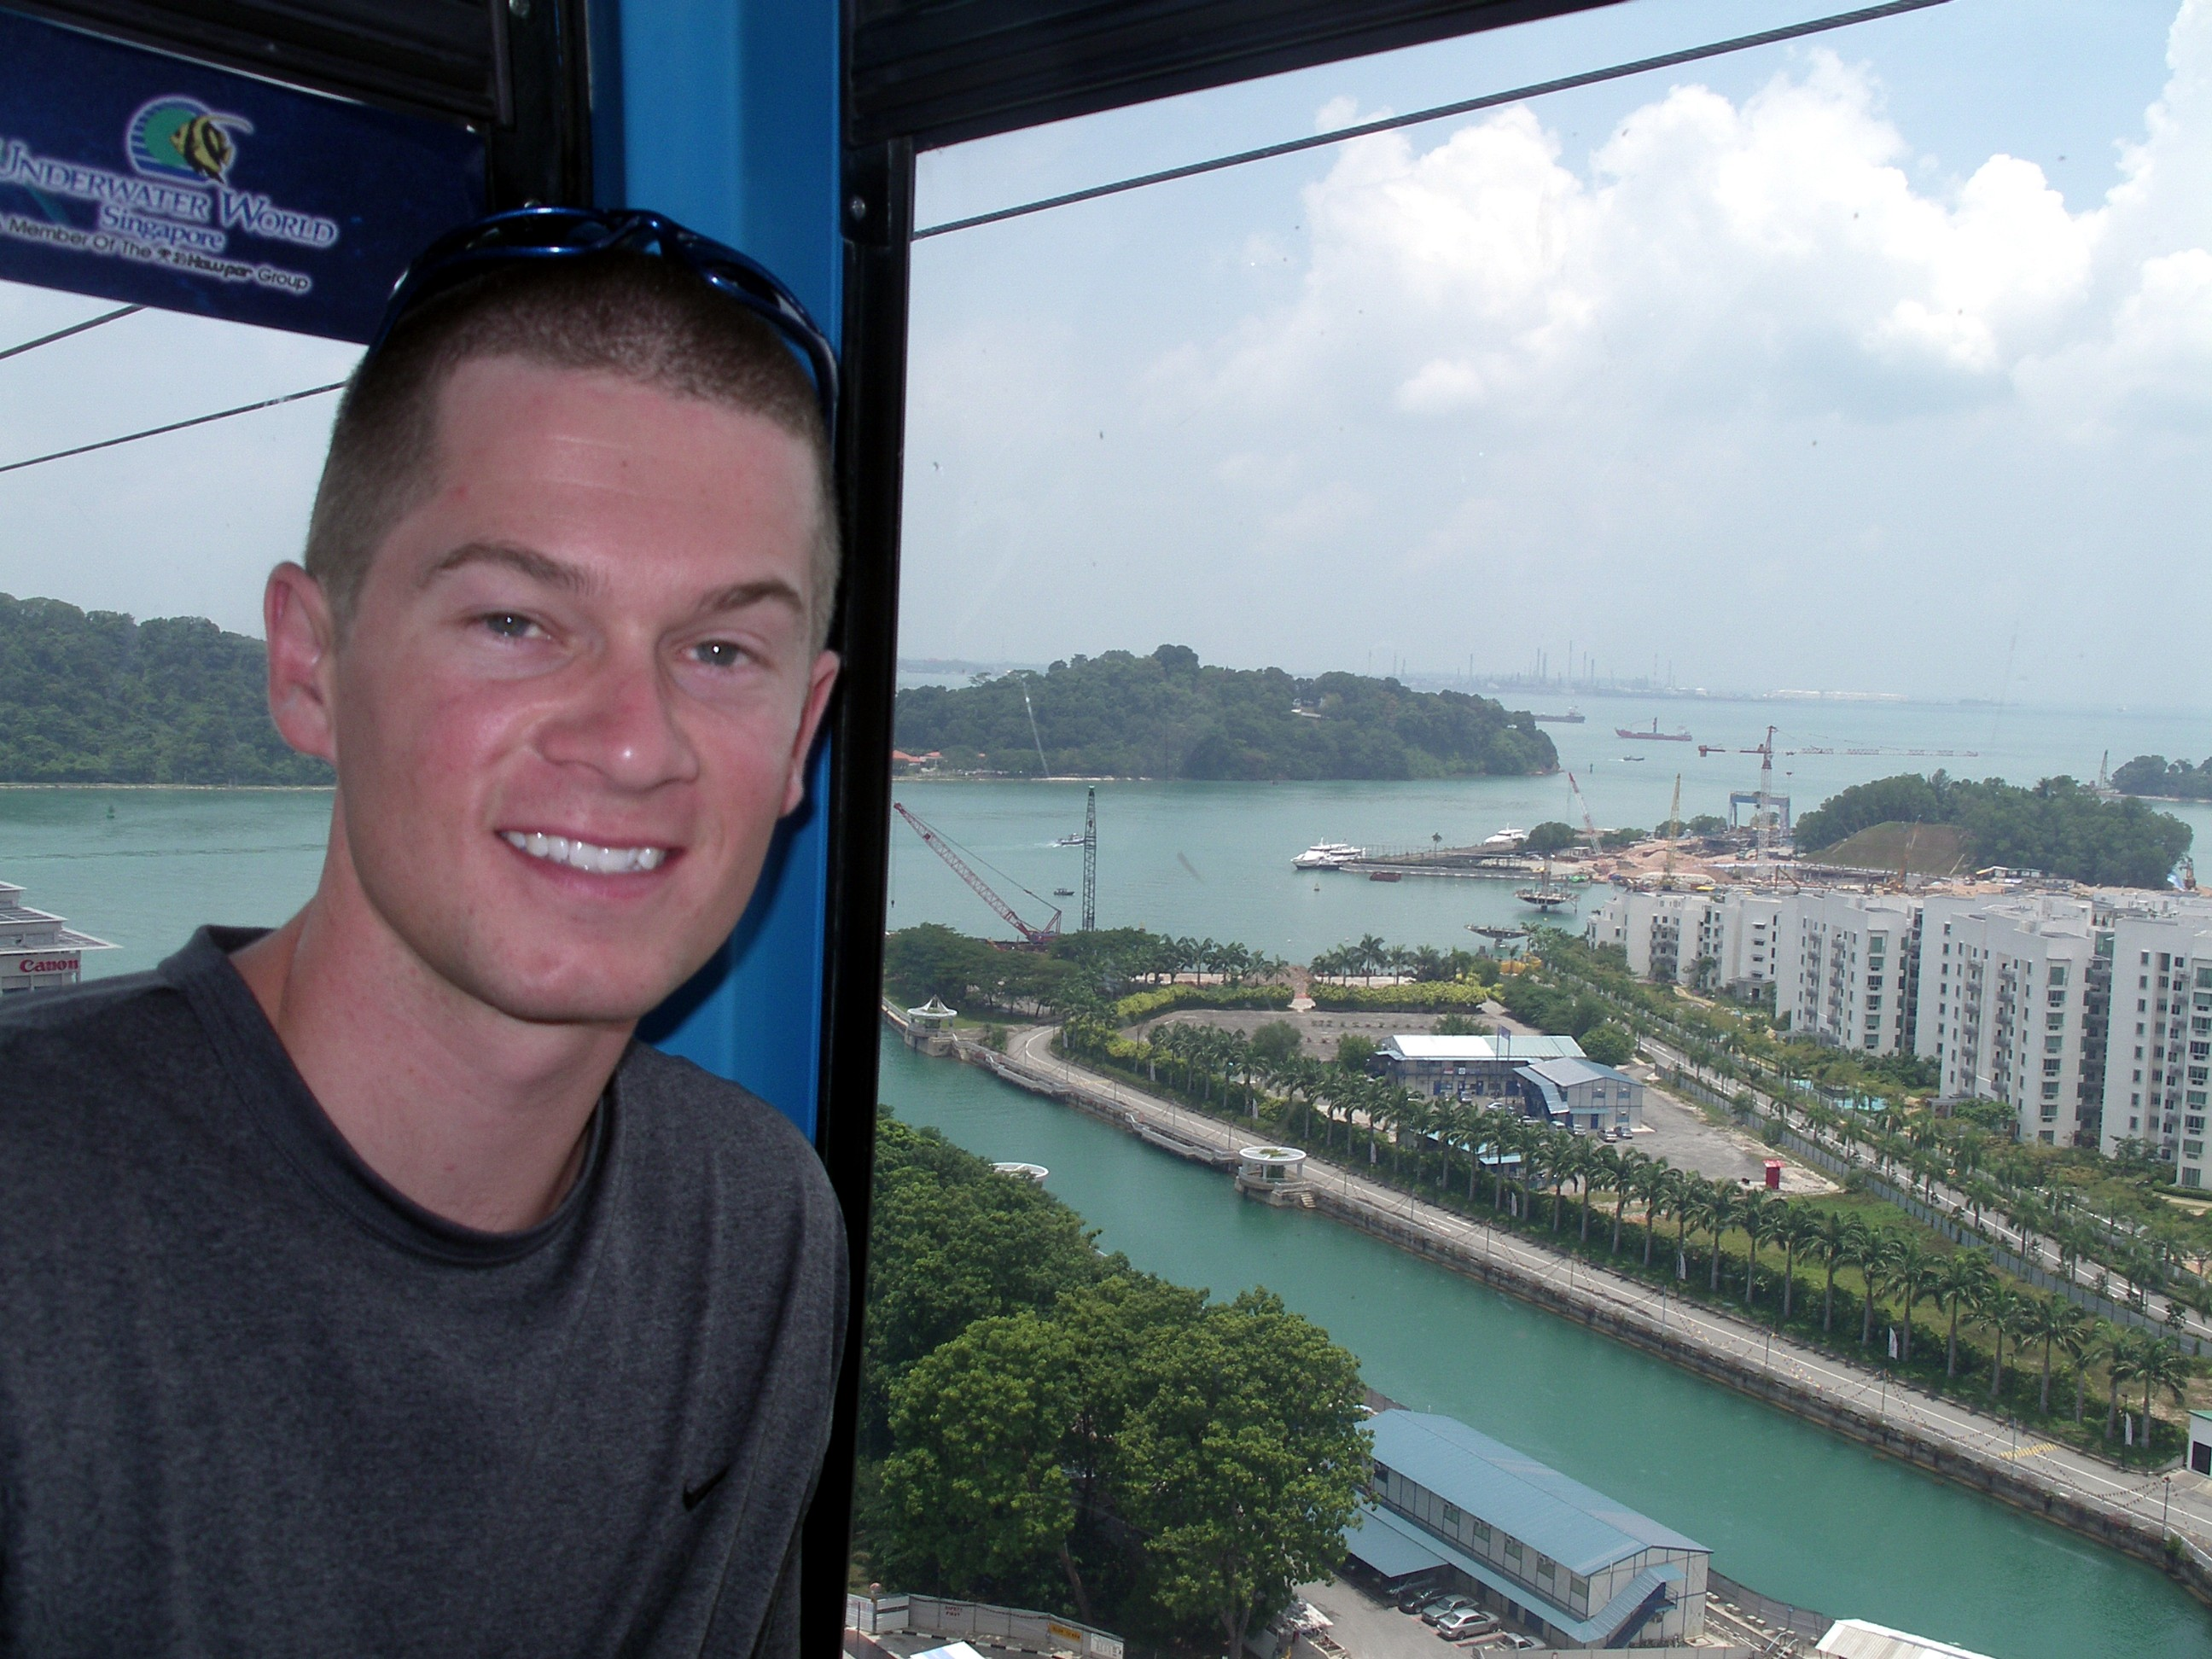 Cable Car Ride to Sentosa Island, Singapore with a New Burr Haircut